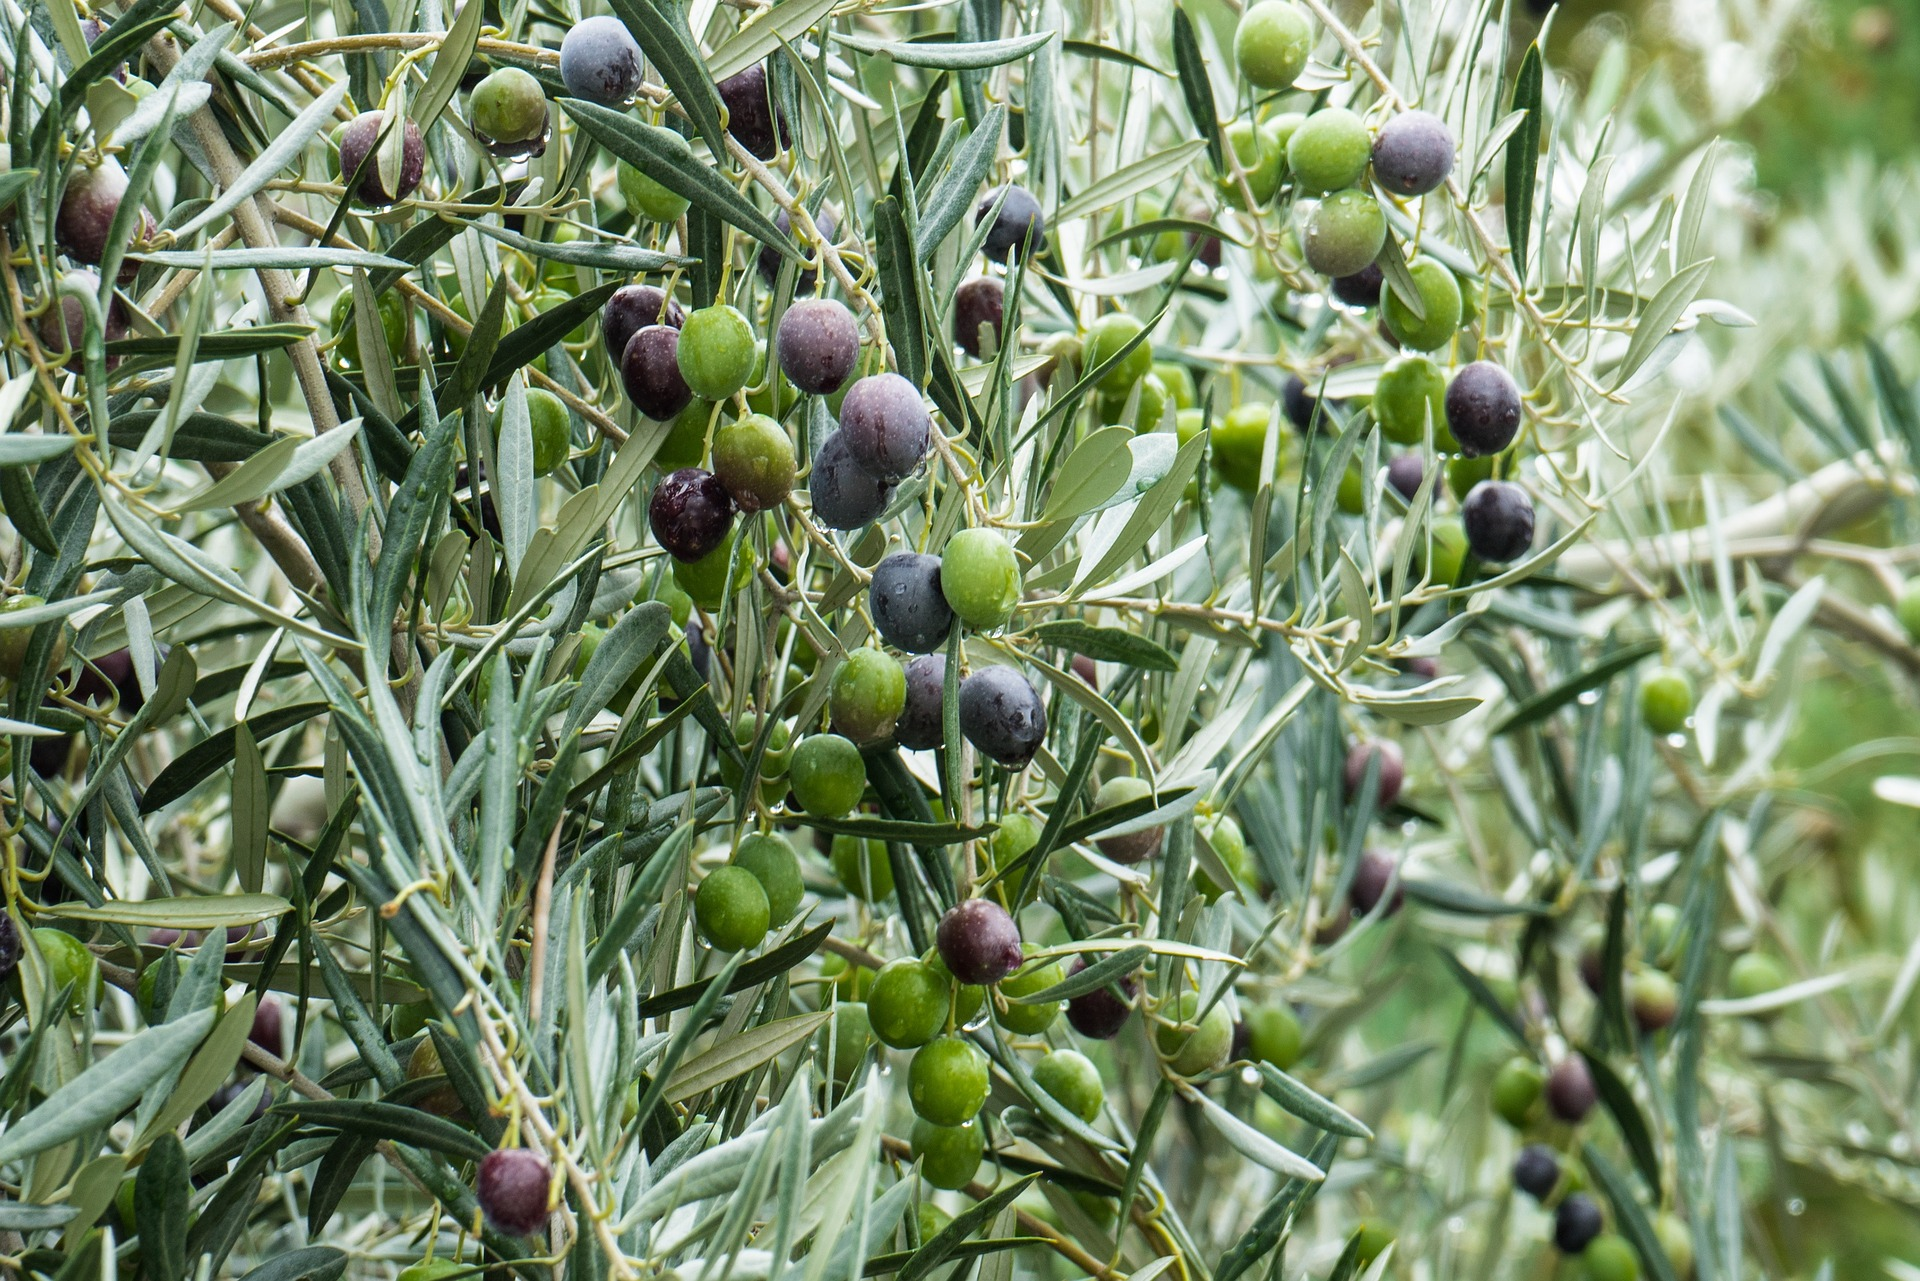 Olives on Olive Tree Branches